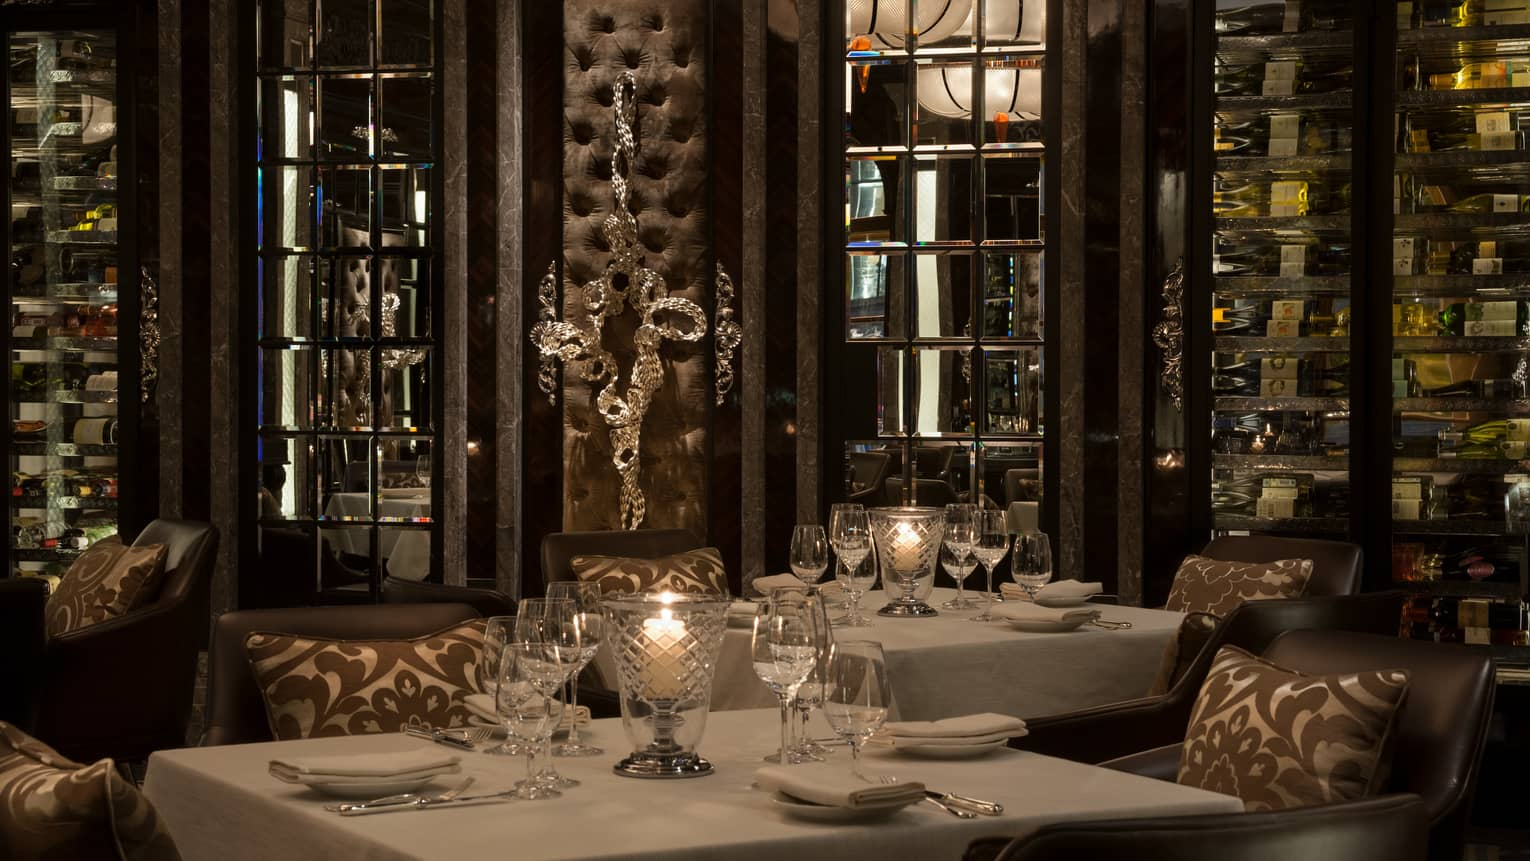 Candles glow in crystal votives on dining tables with white tablecloths in dark Percorso restaurant